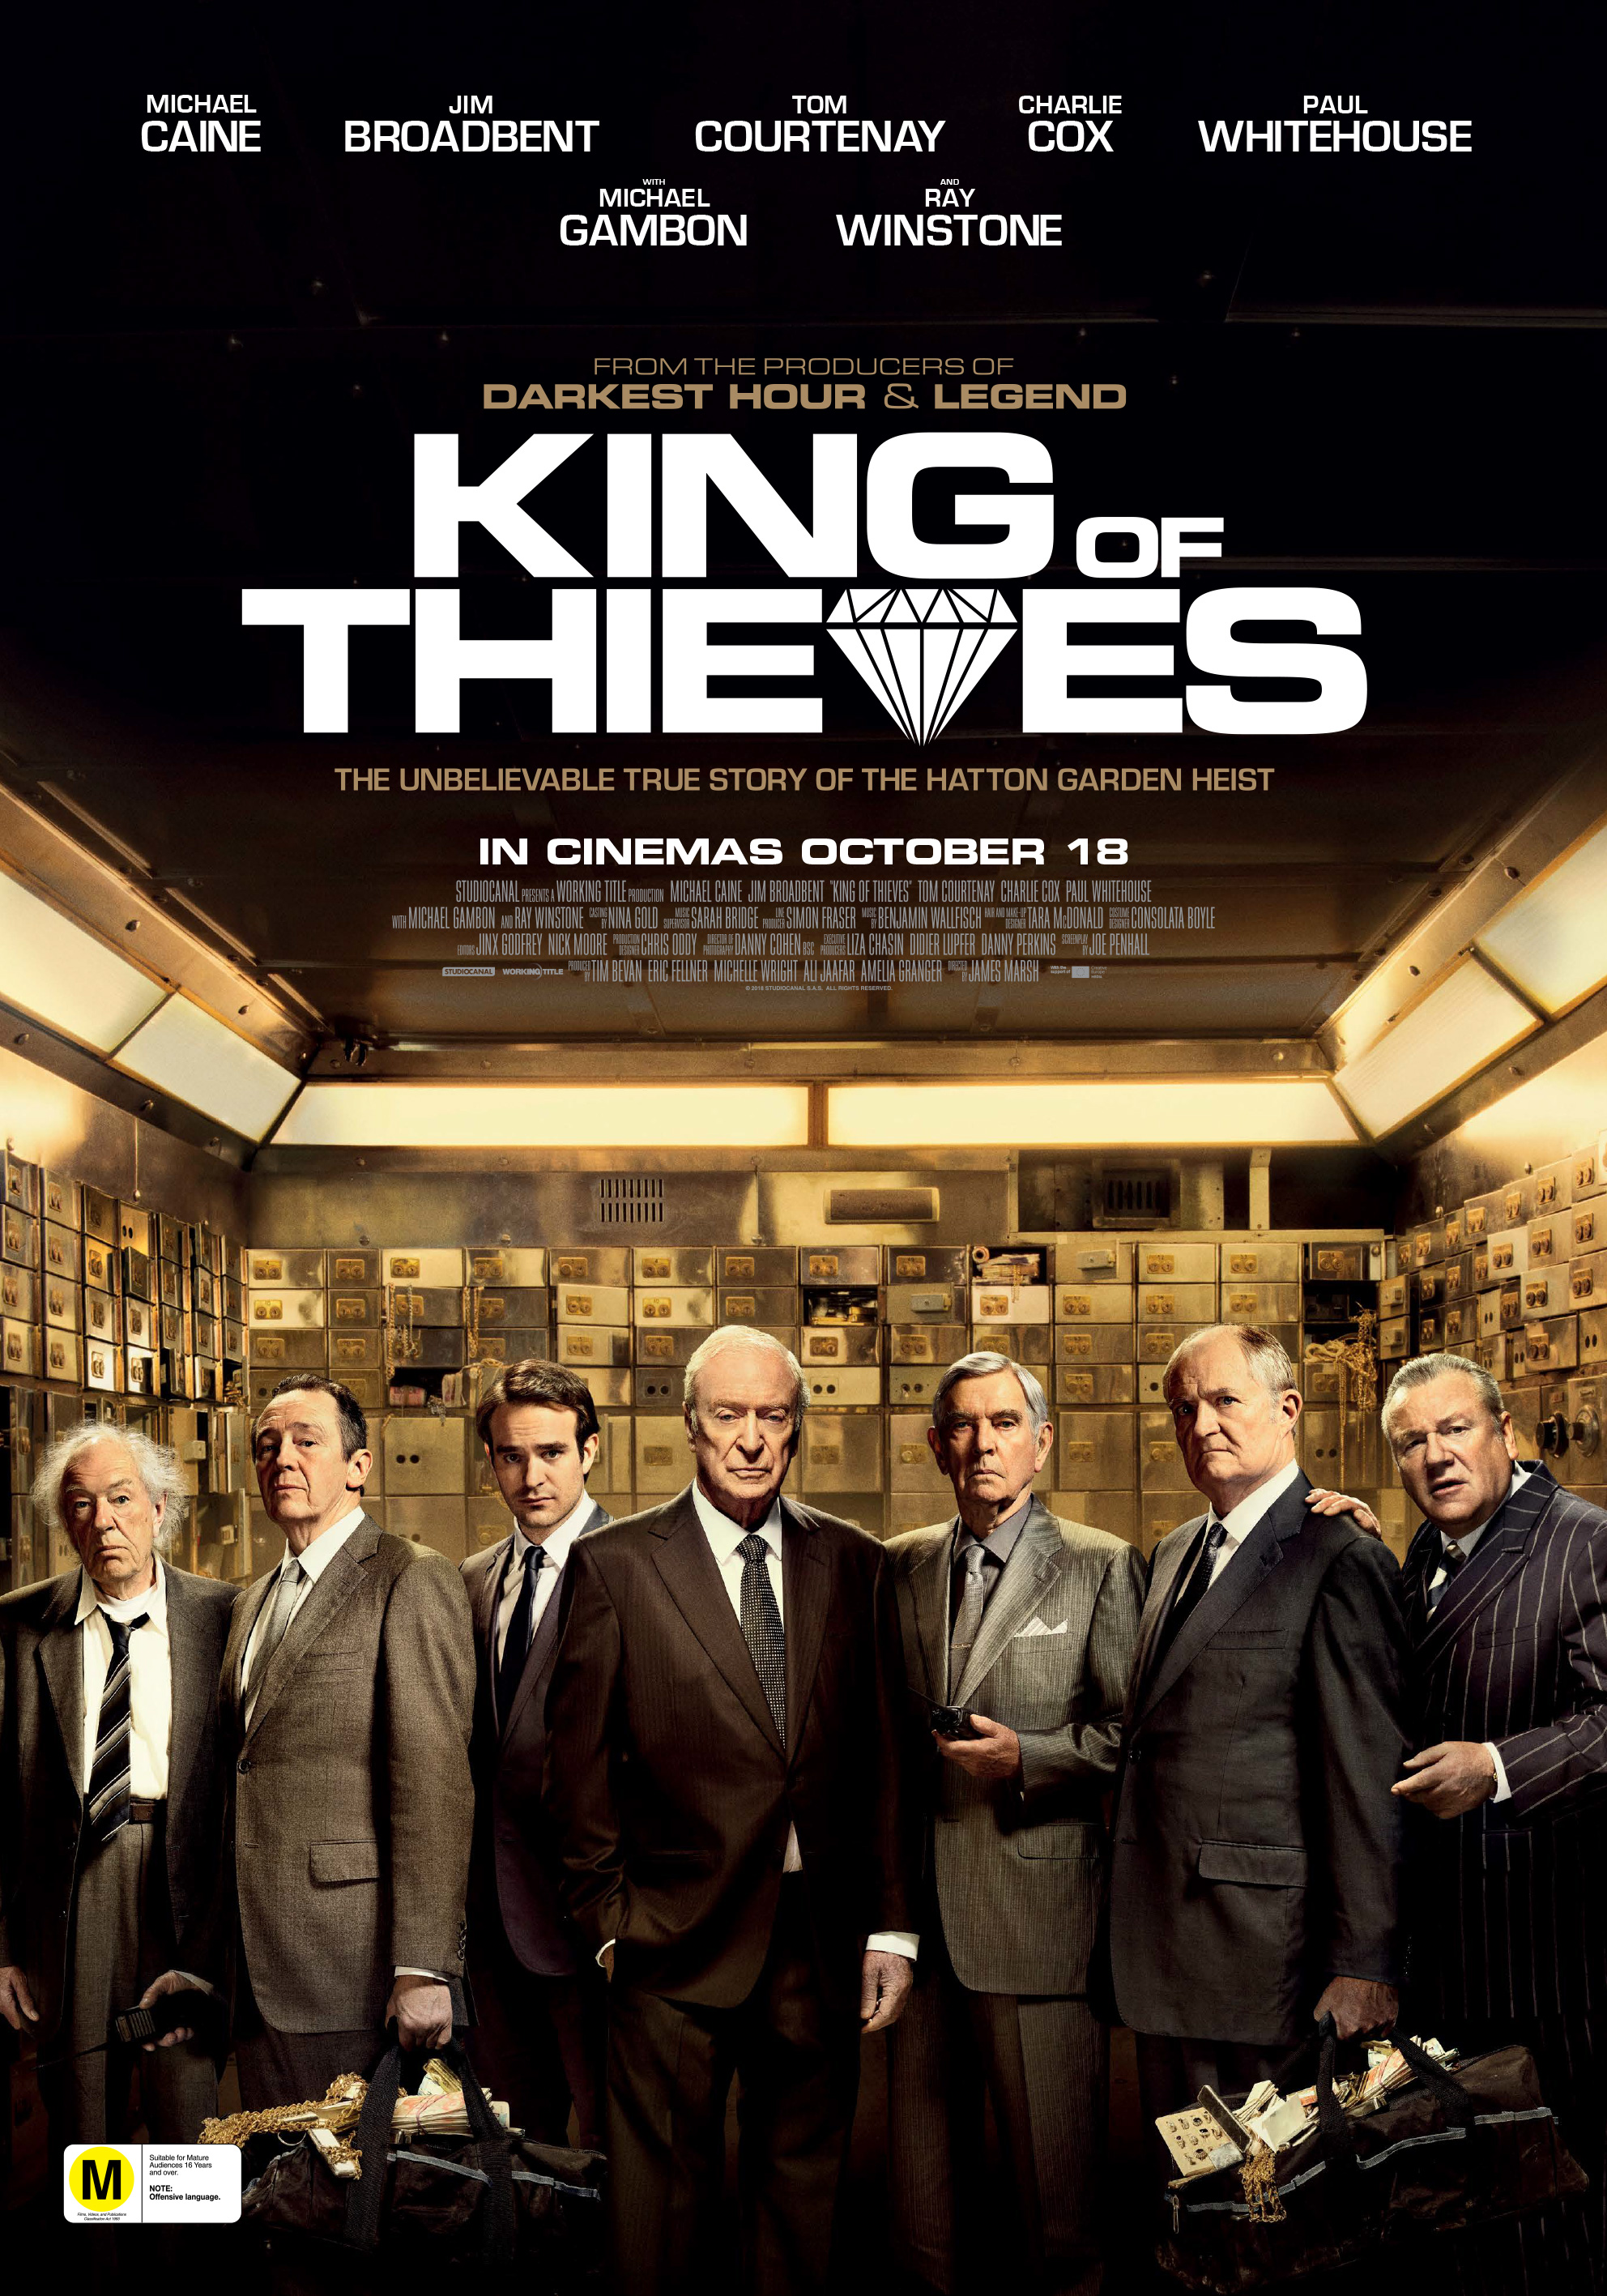 Poster of The King of Thieves